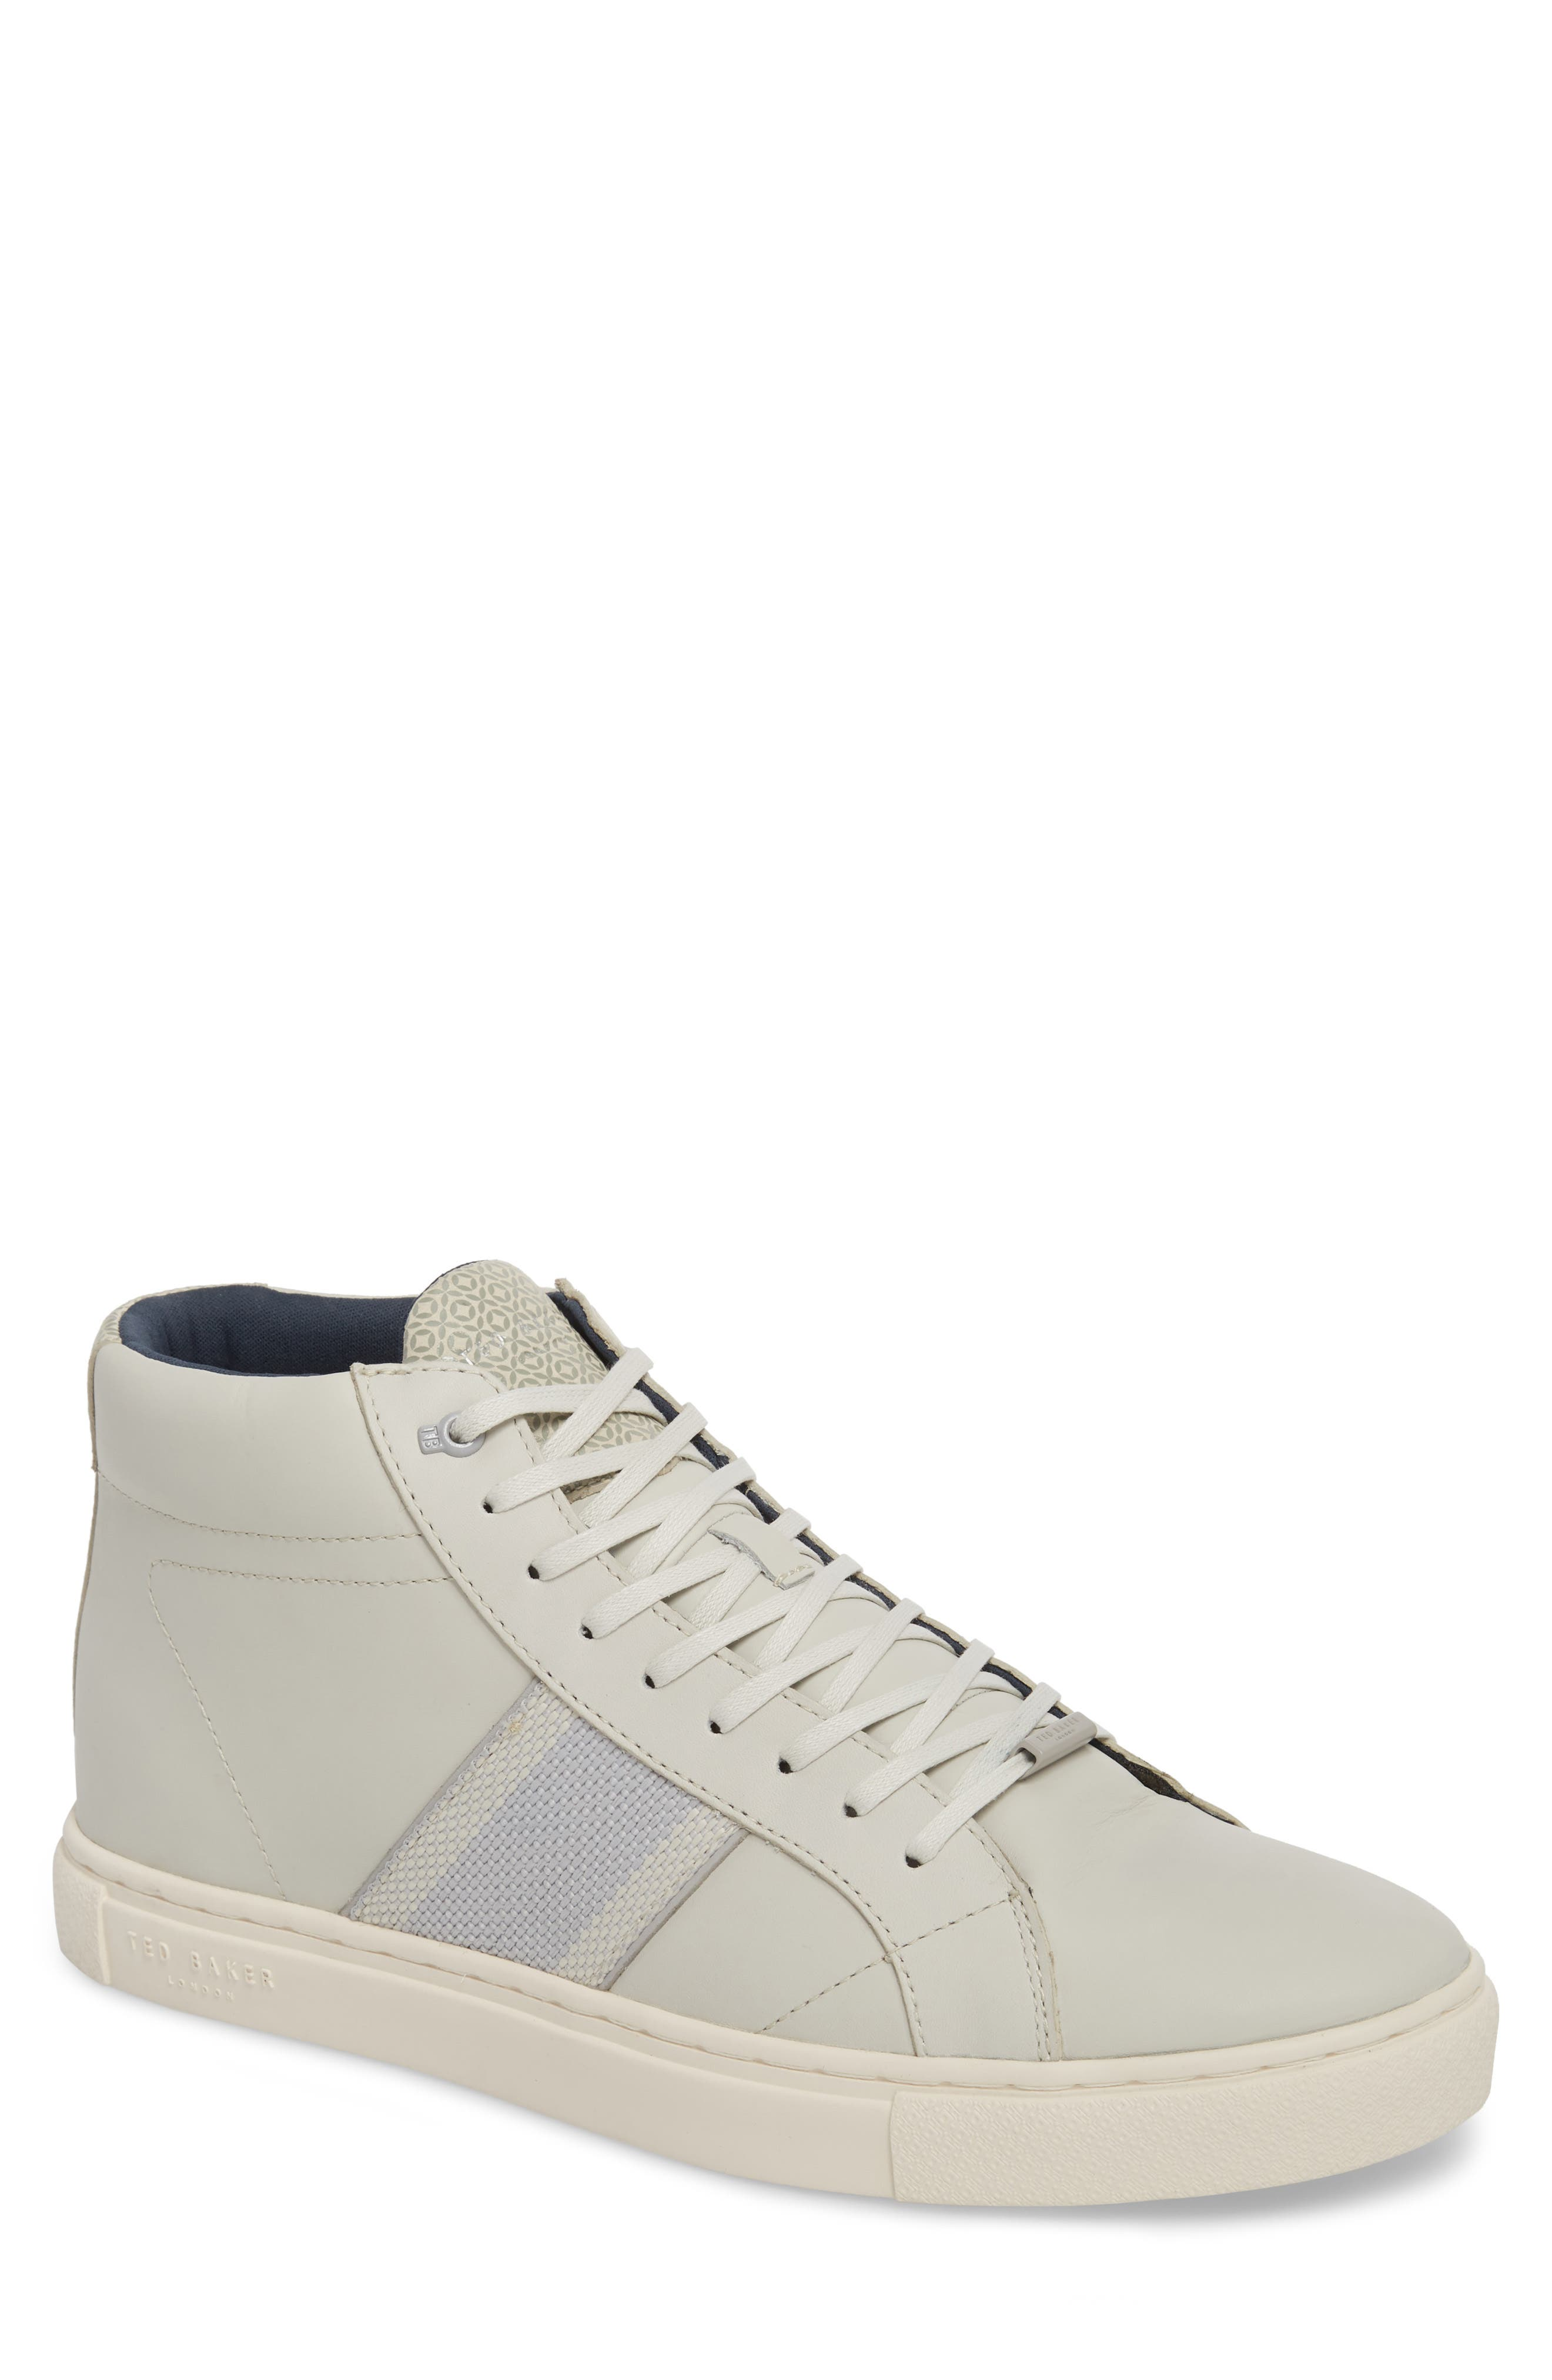 Cruuw High Top Sneaker,                         Main,                         color, WHITE LEATHER